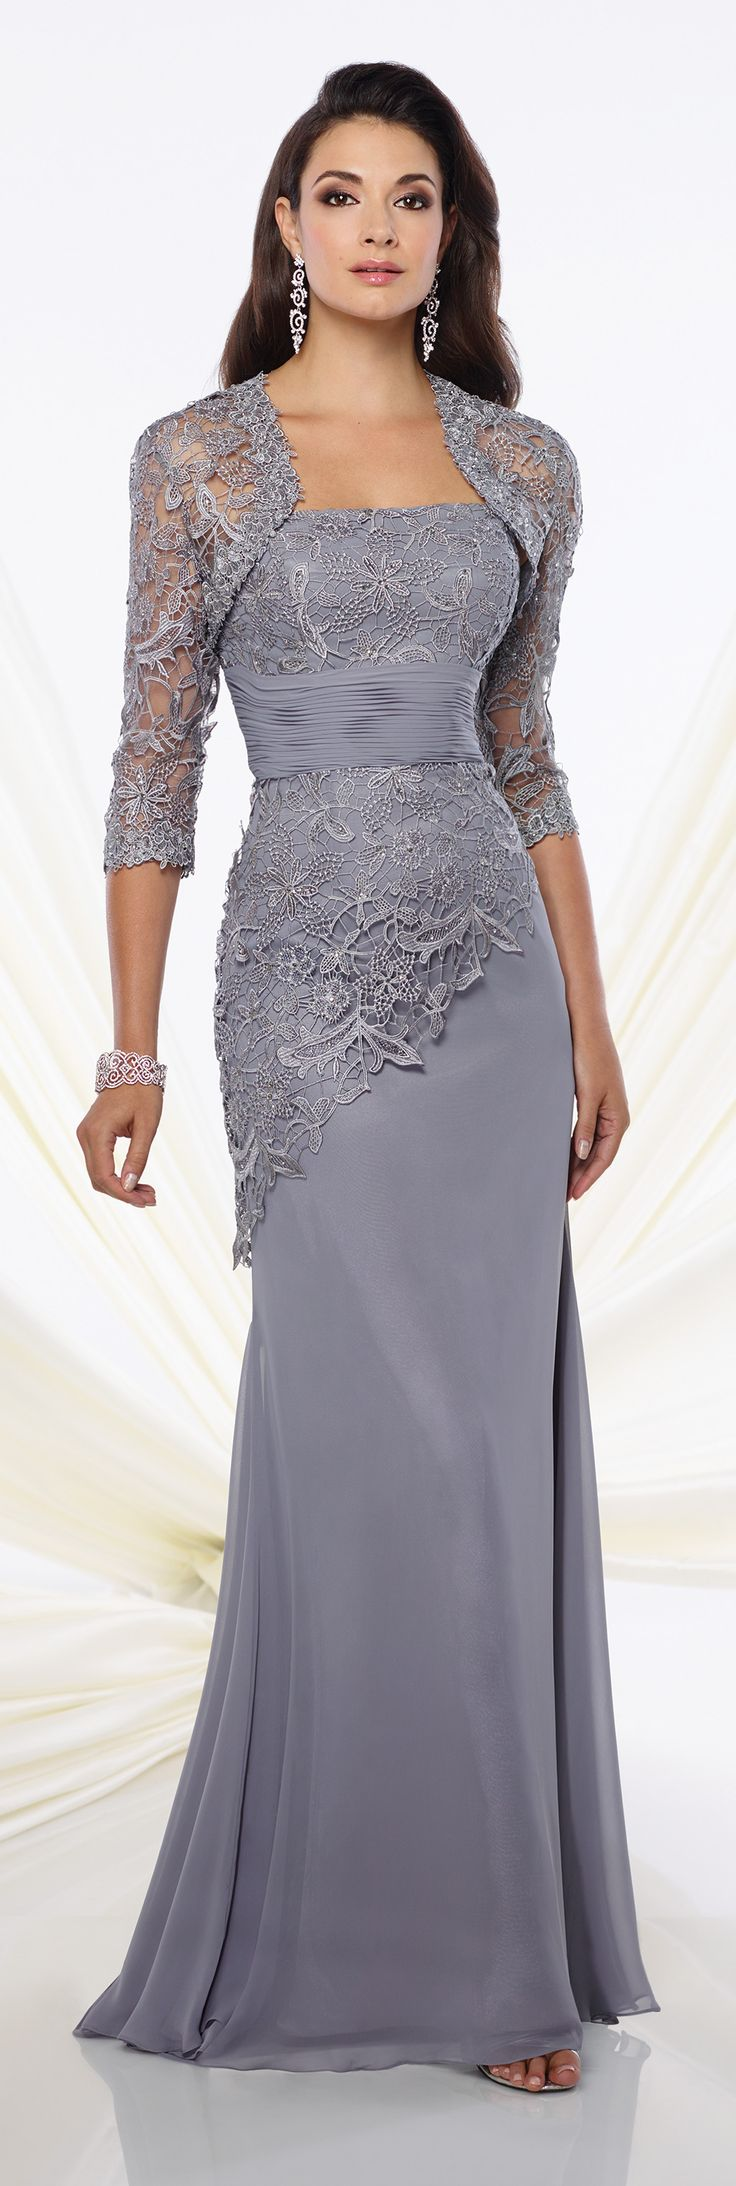 Formal Evening Gowns by Mon Cheri - Spring 2016 - Style No. 116944 #eveninggowns